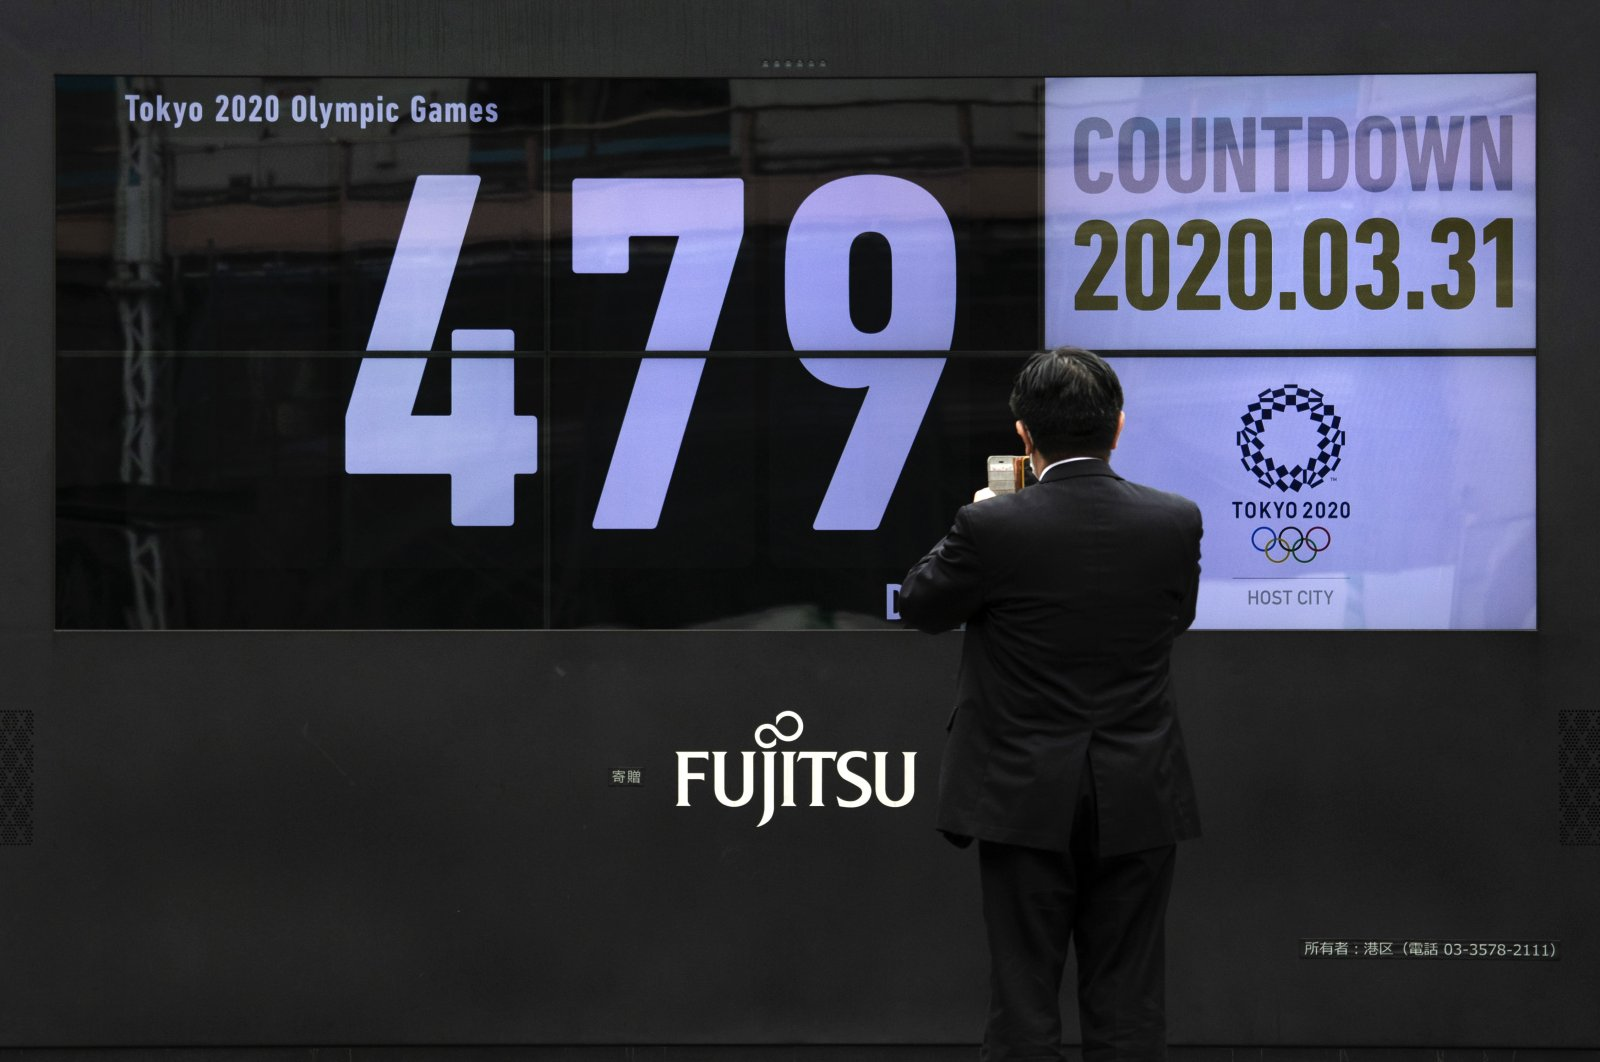 A man takes pictures of a countdown display for the Tokyo 2020 Olympics after it was restarted following the decision to postpone the Games, Tuesday, March 31, 2020, in Tokyo. (AP Photo)